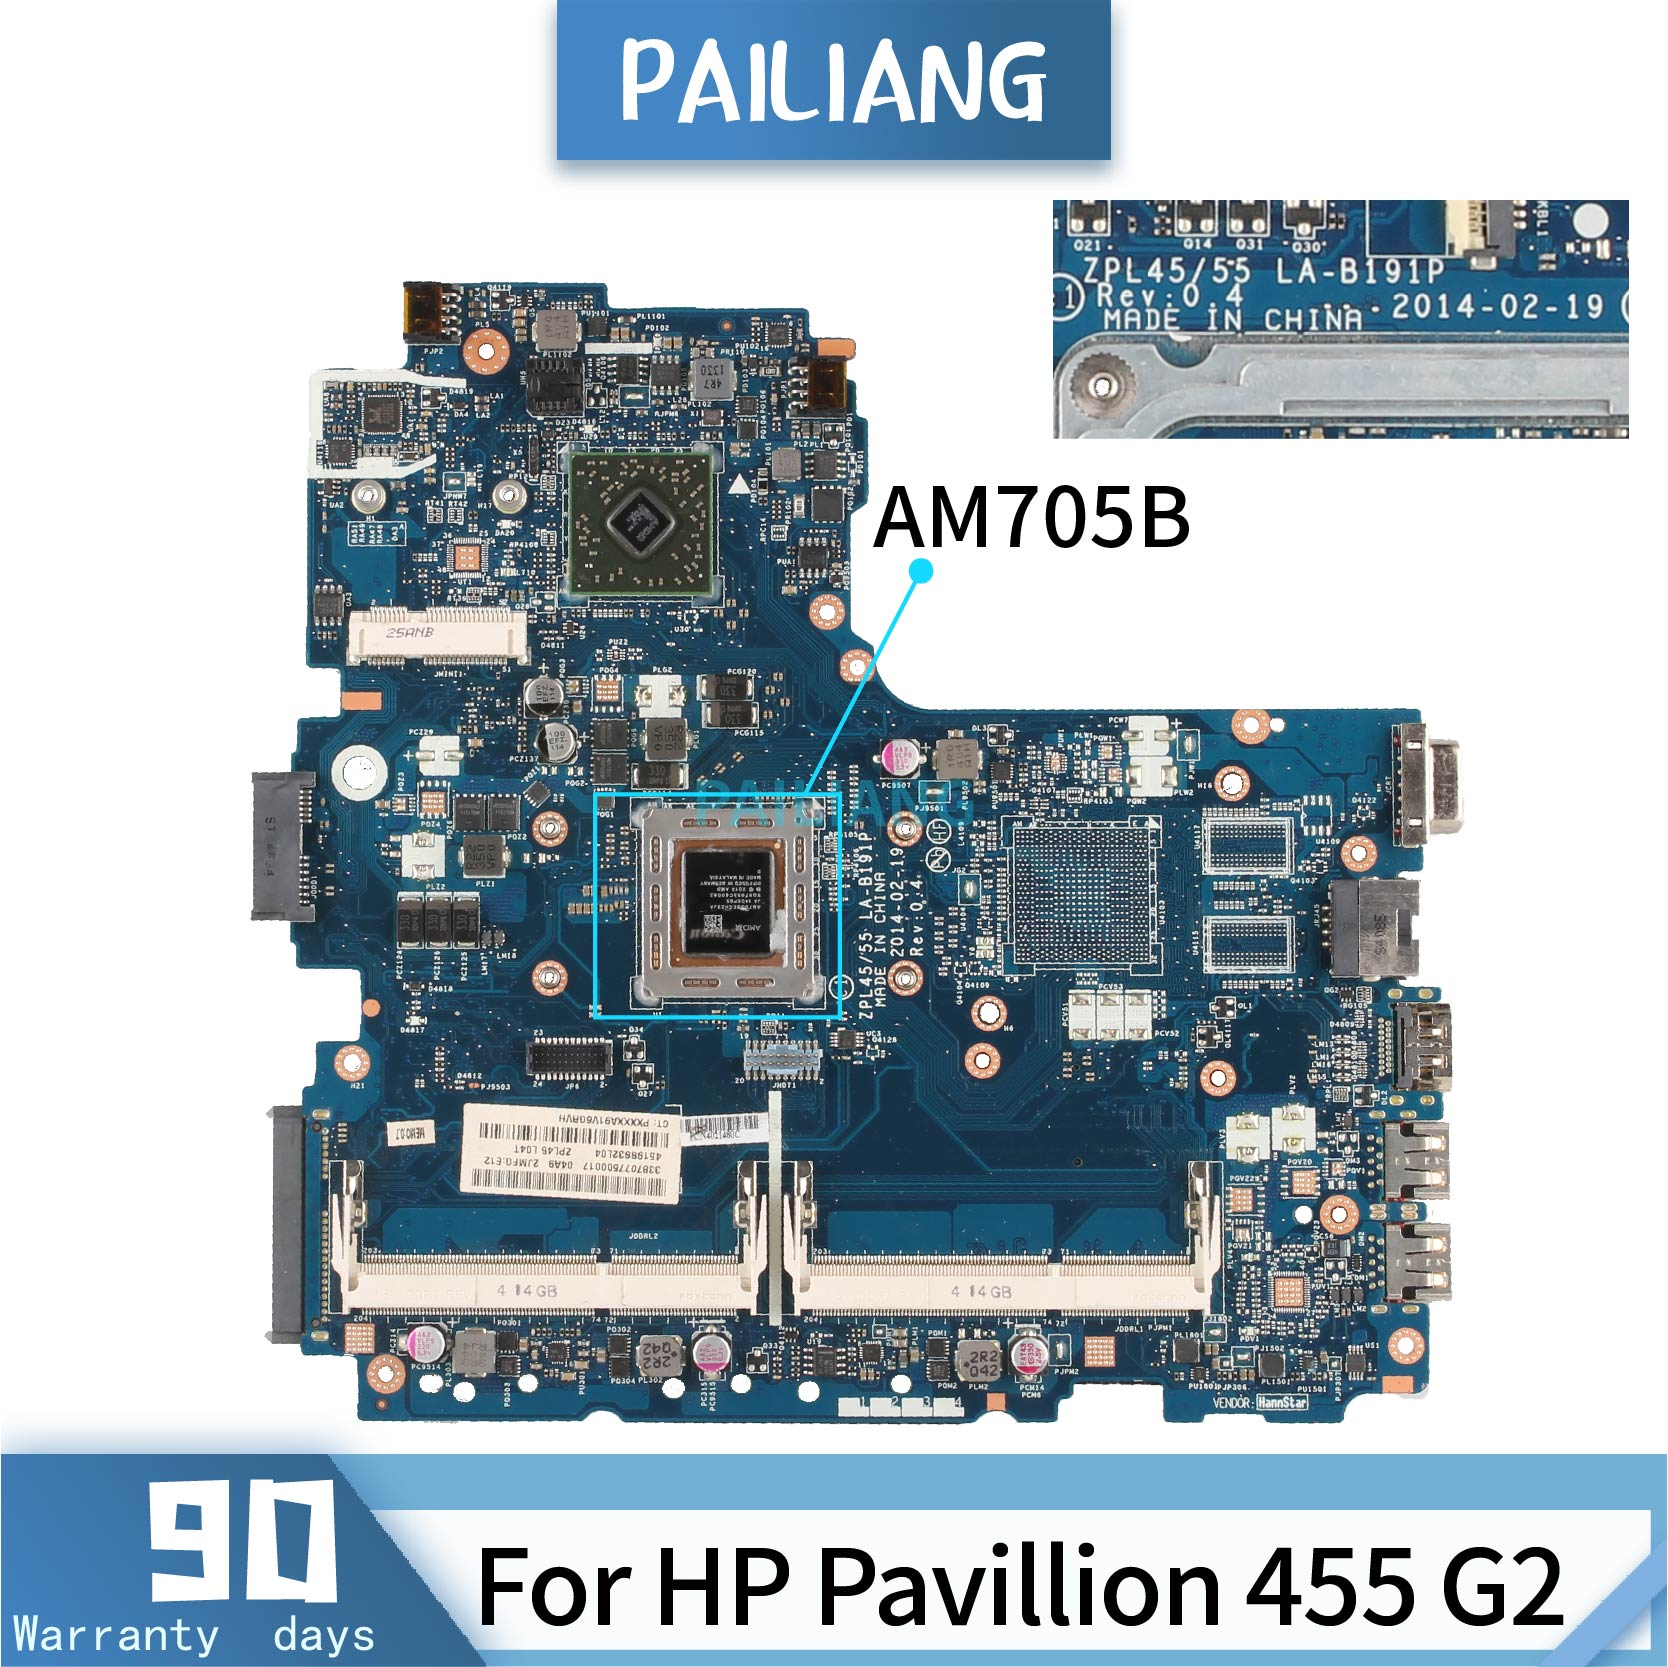 PAILIANG Laptop <font><b>motherboard</b></font> For <font><b>HP</b></font> Pavillion <font><b>455</b></font> G2 Mainboard Core AM705B TESTED ddr3 image